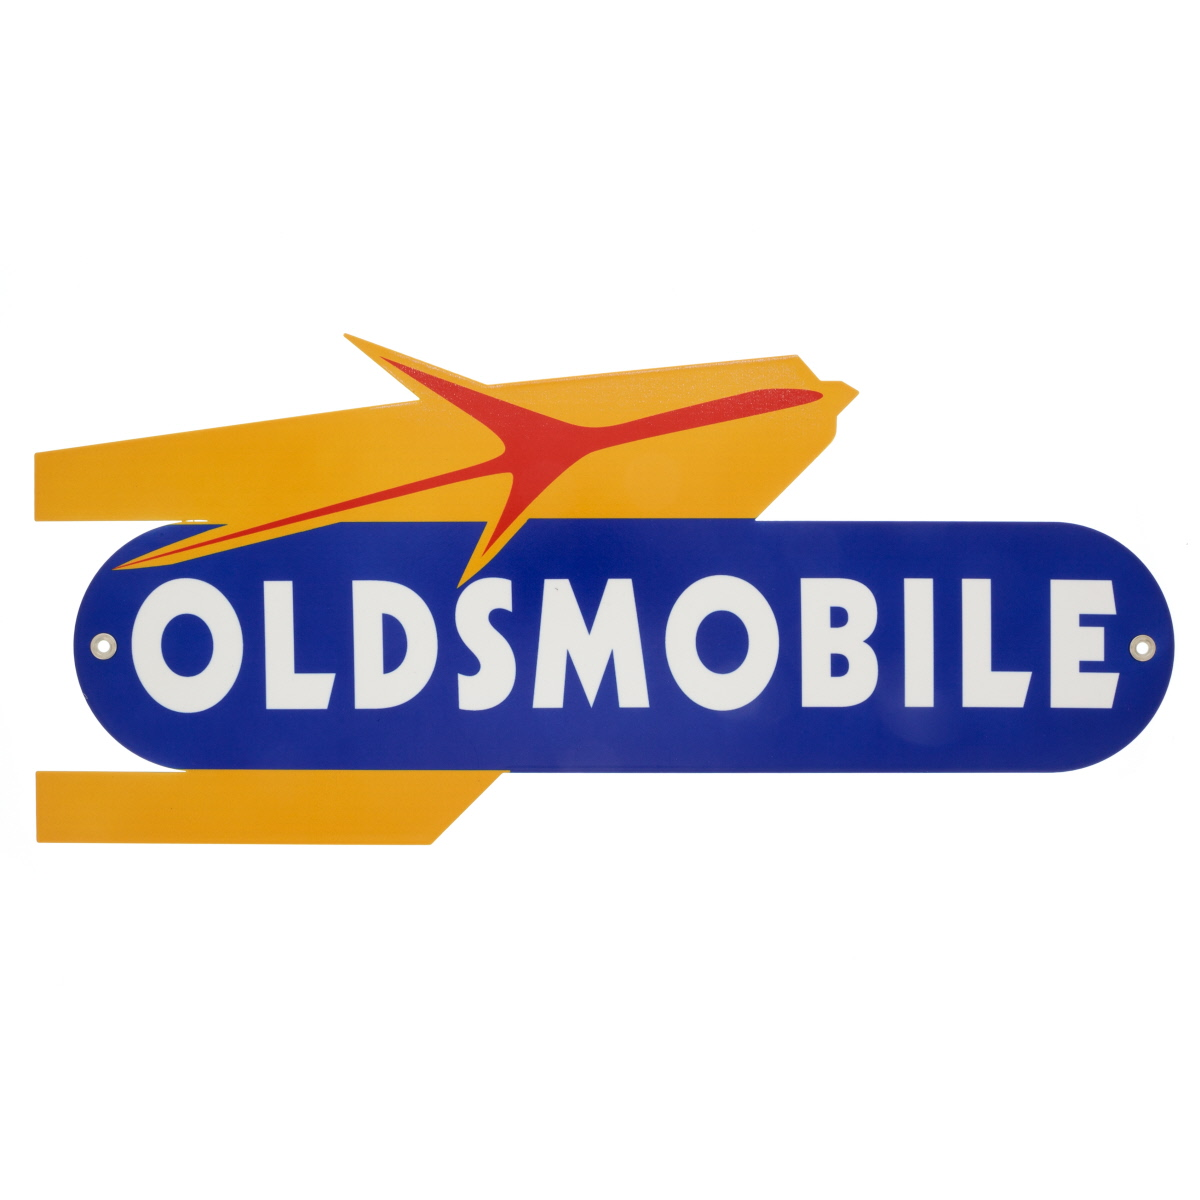 Oldsmobile Rocket Logo Metal Sign Reproduction Man Cave Garage Decor 18 X 8